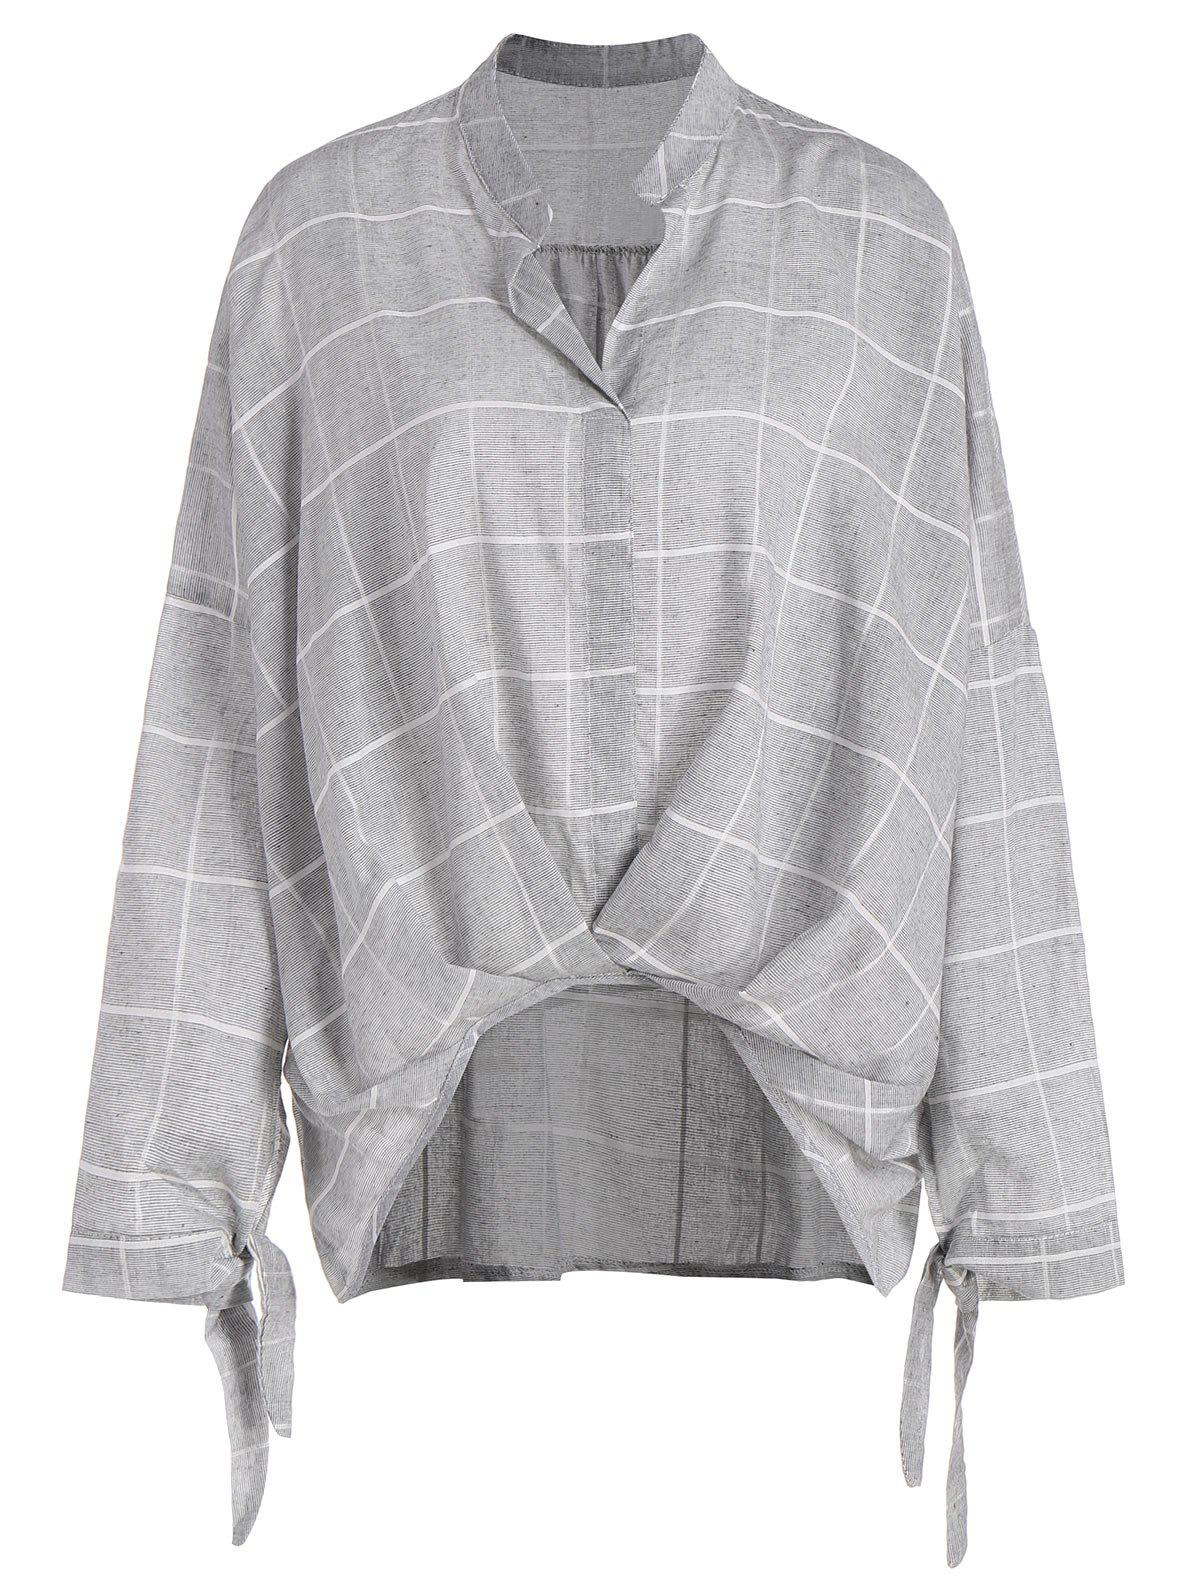 Plus Size Plaid High Low Drop Shoulder Blouse - GRAY 3XL